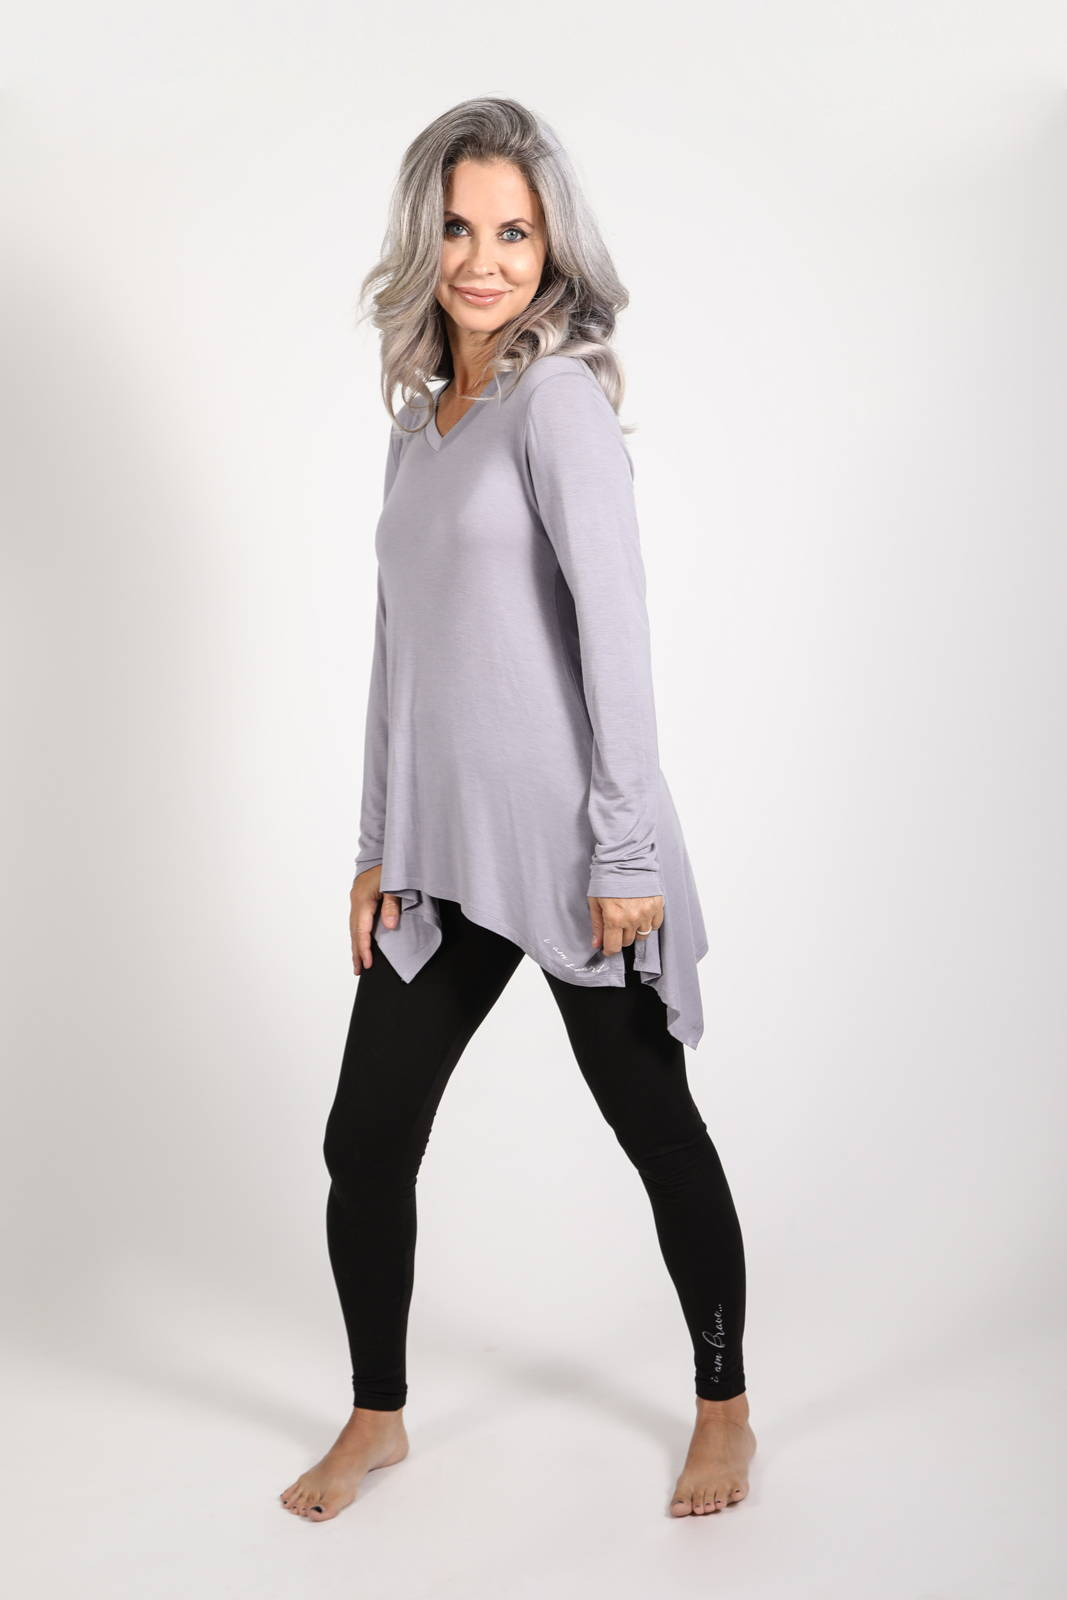 Model wearing the Solas Top in Lavender Grey and the Lumo Legging